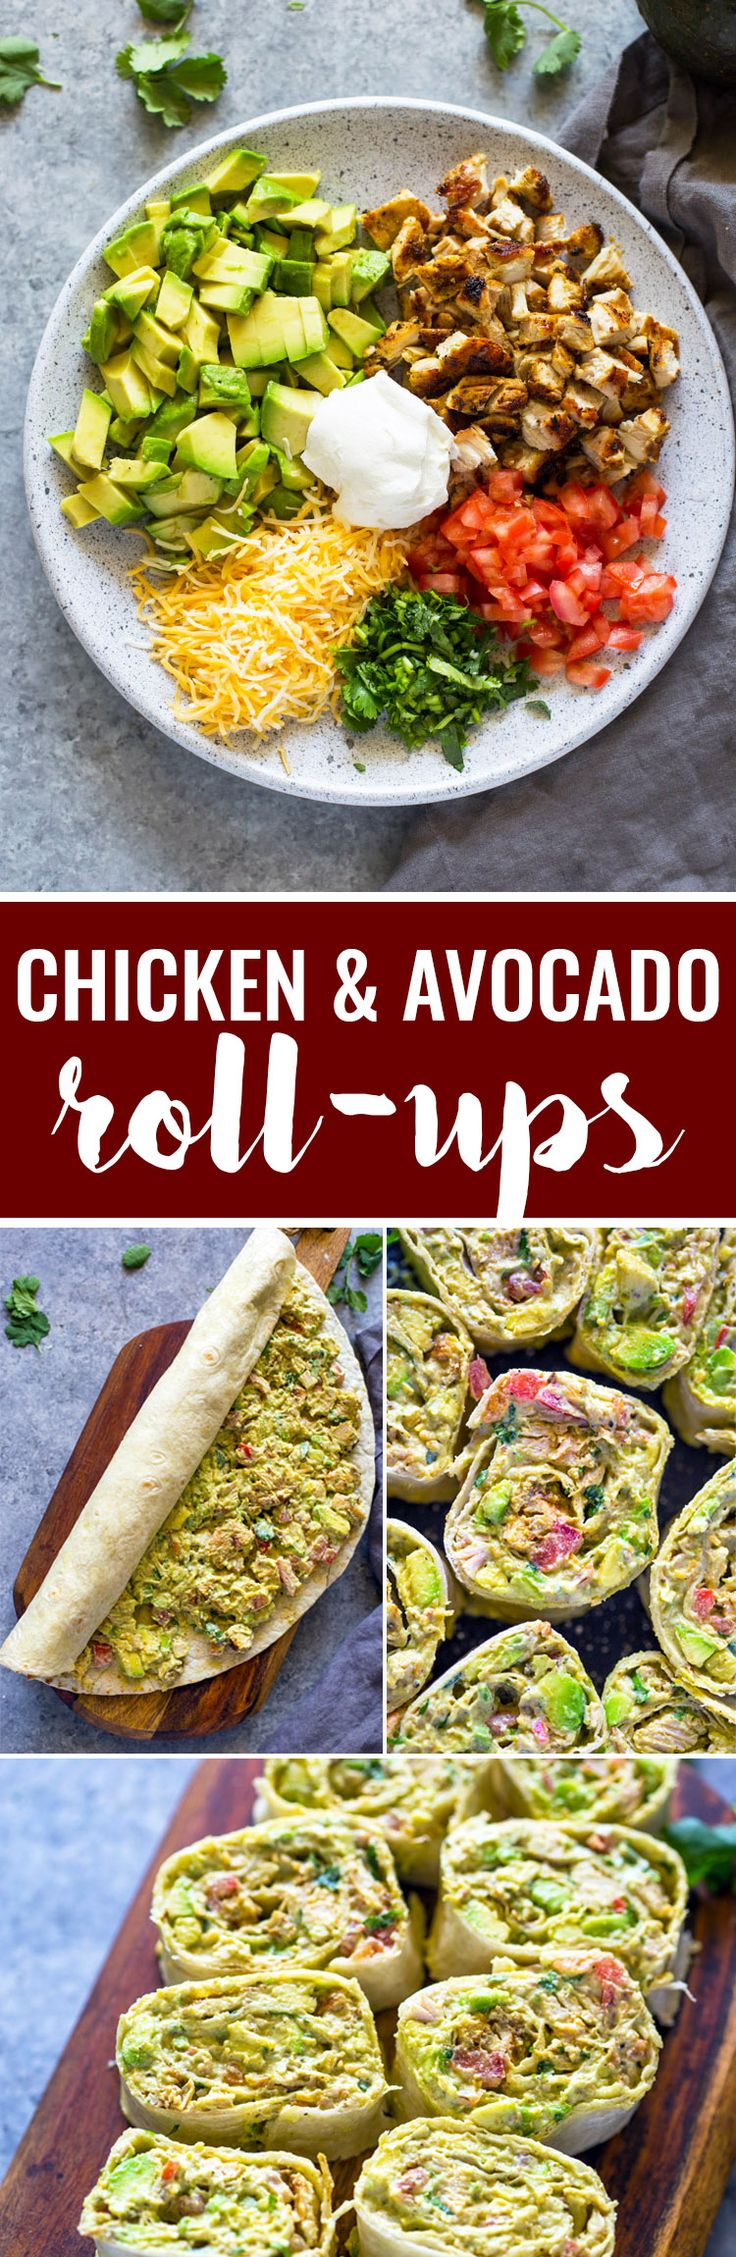 Quick 10 Minute Chicken and Avocado Roll-ups